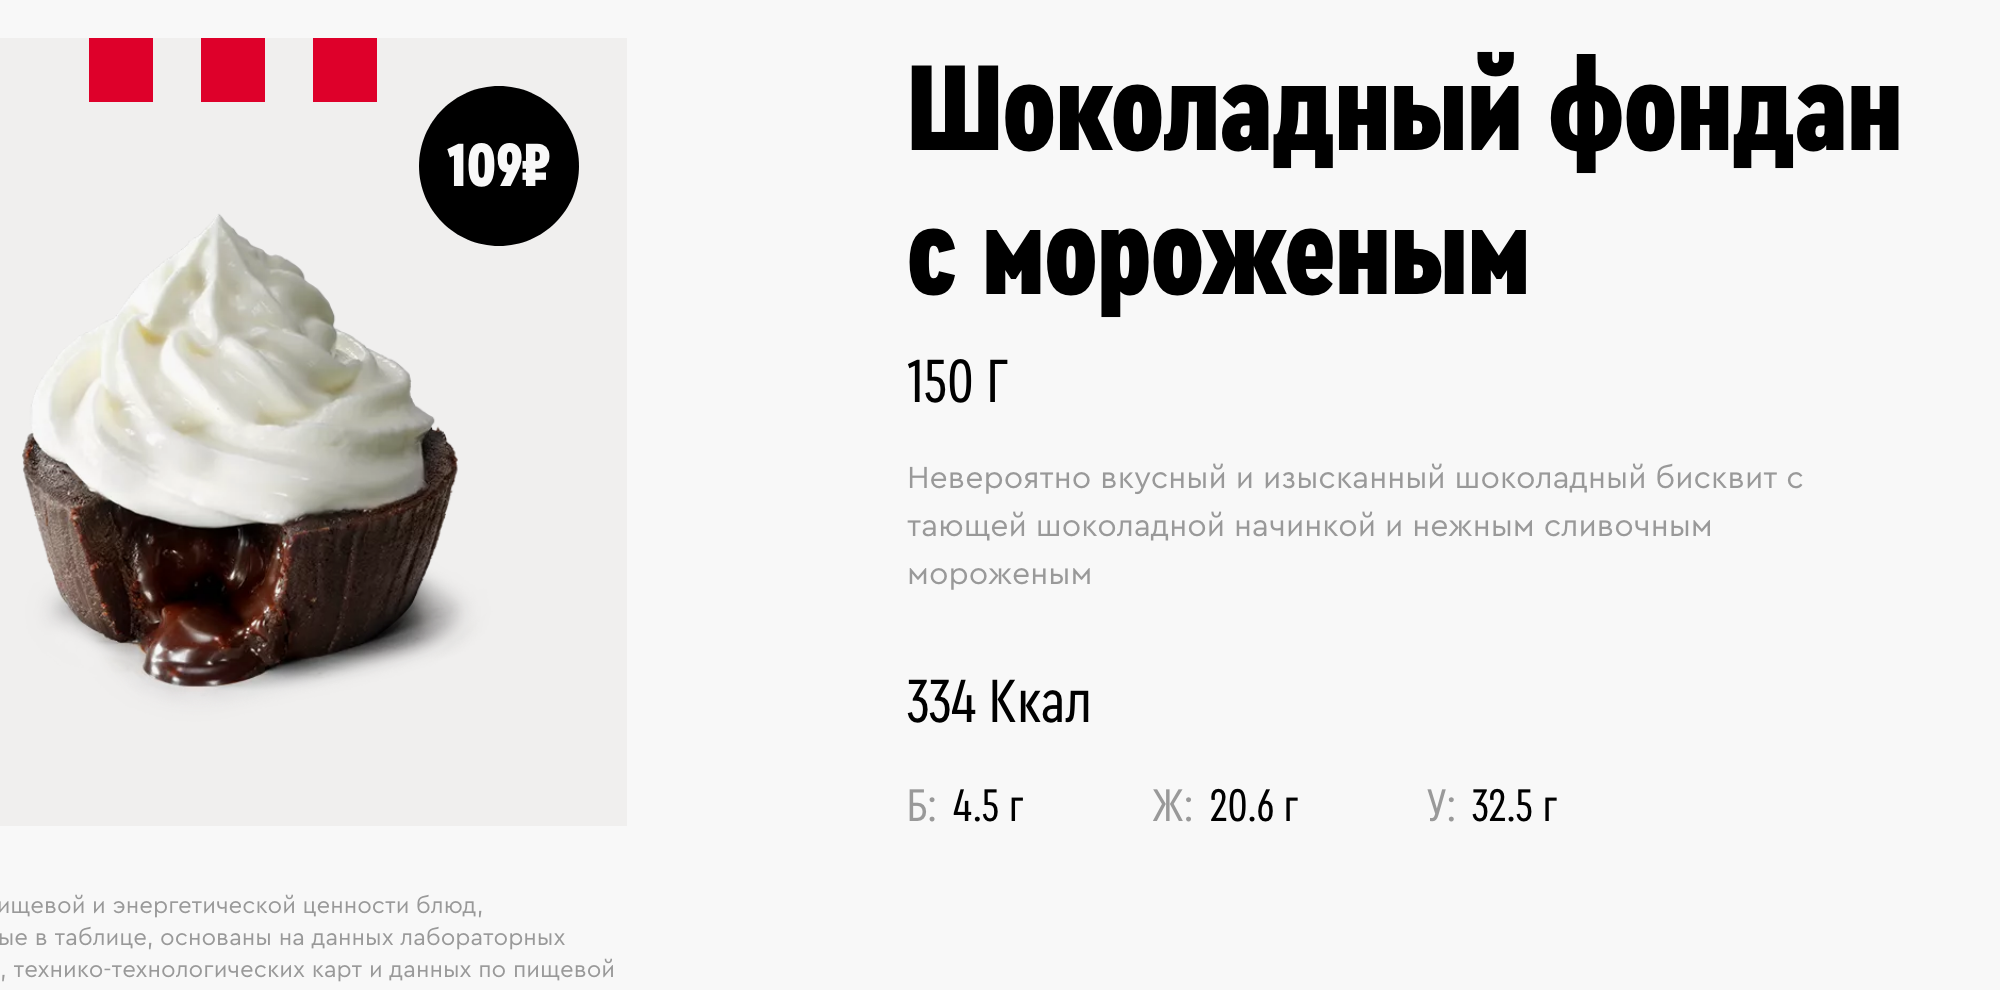 Type Mates Fonts In Use Kentucky Fried Chicken Russia 04 Cera Condensed Pro